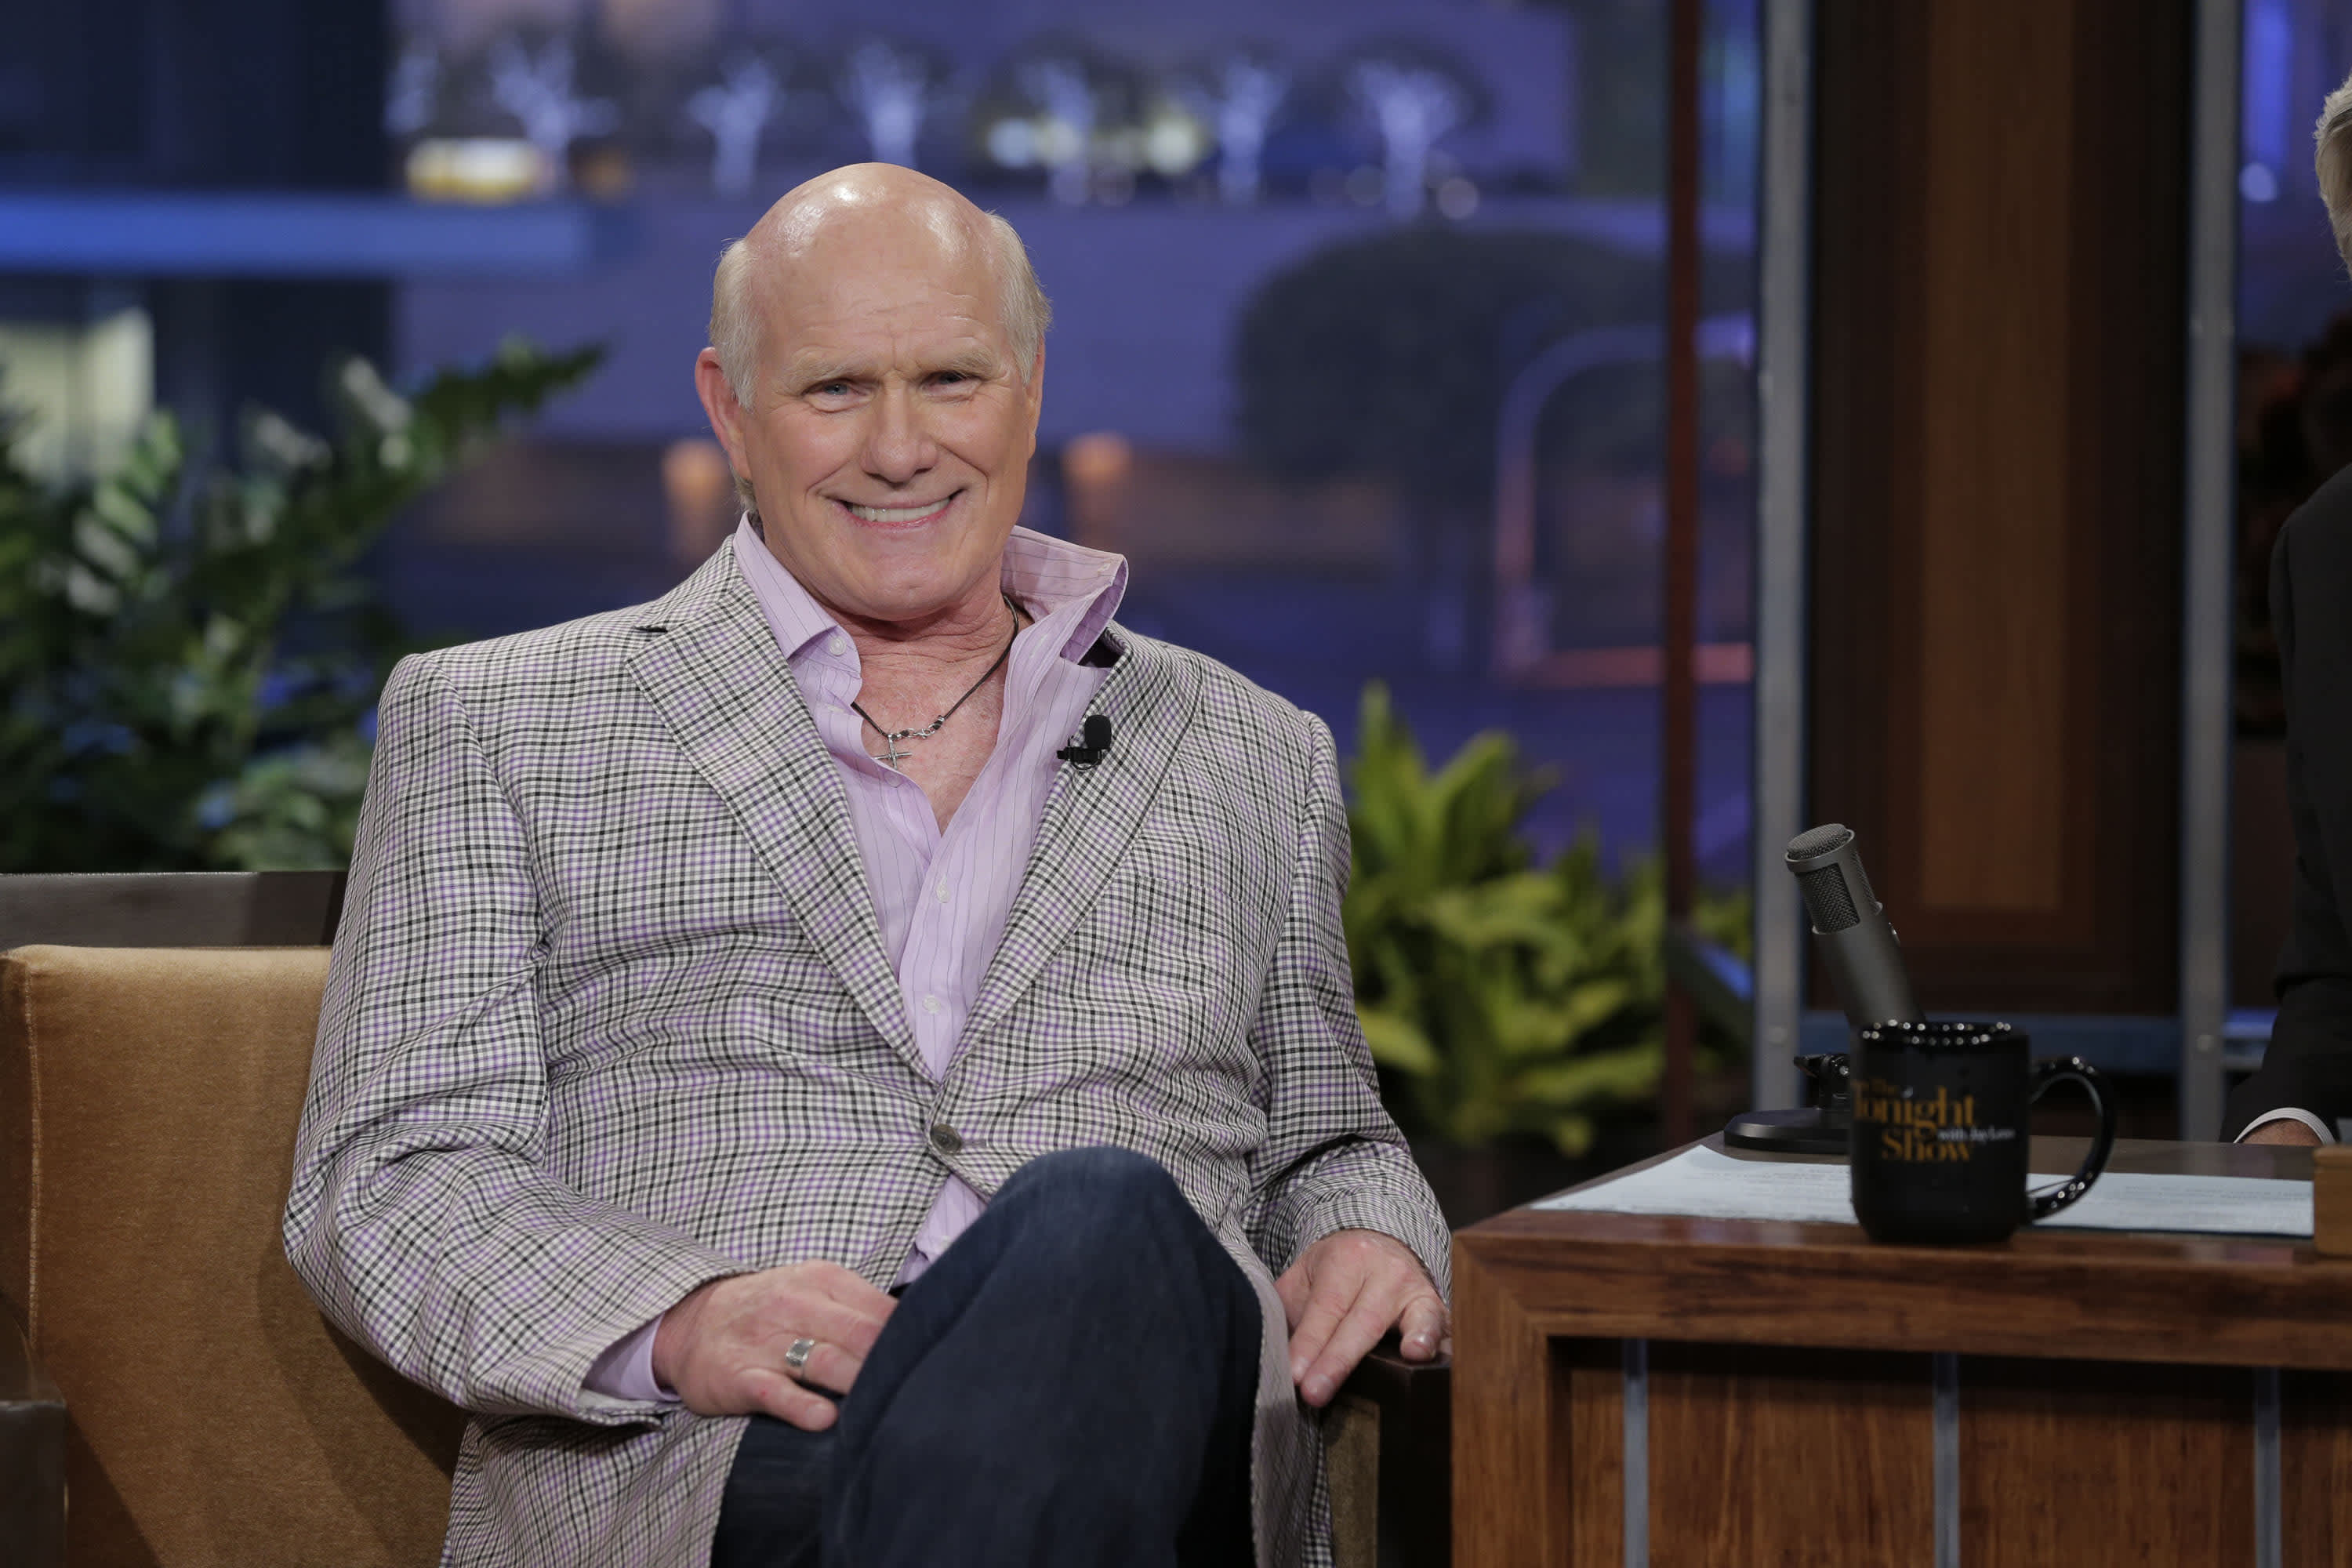 NFL legend Terry Bradshaw once lost $900,000 in real estate—here's why he says it was his best financial move